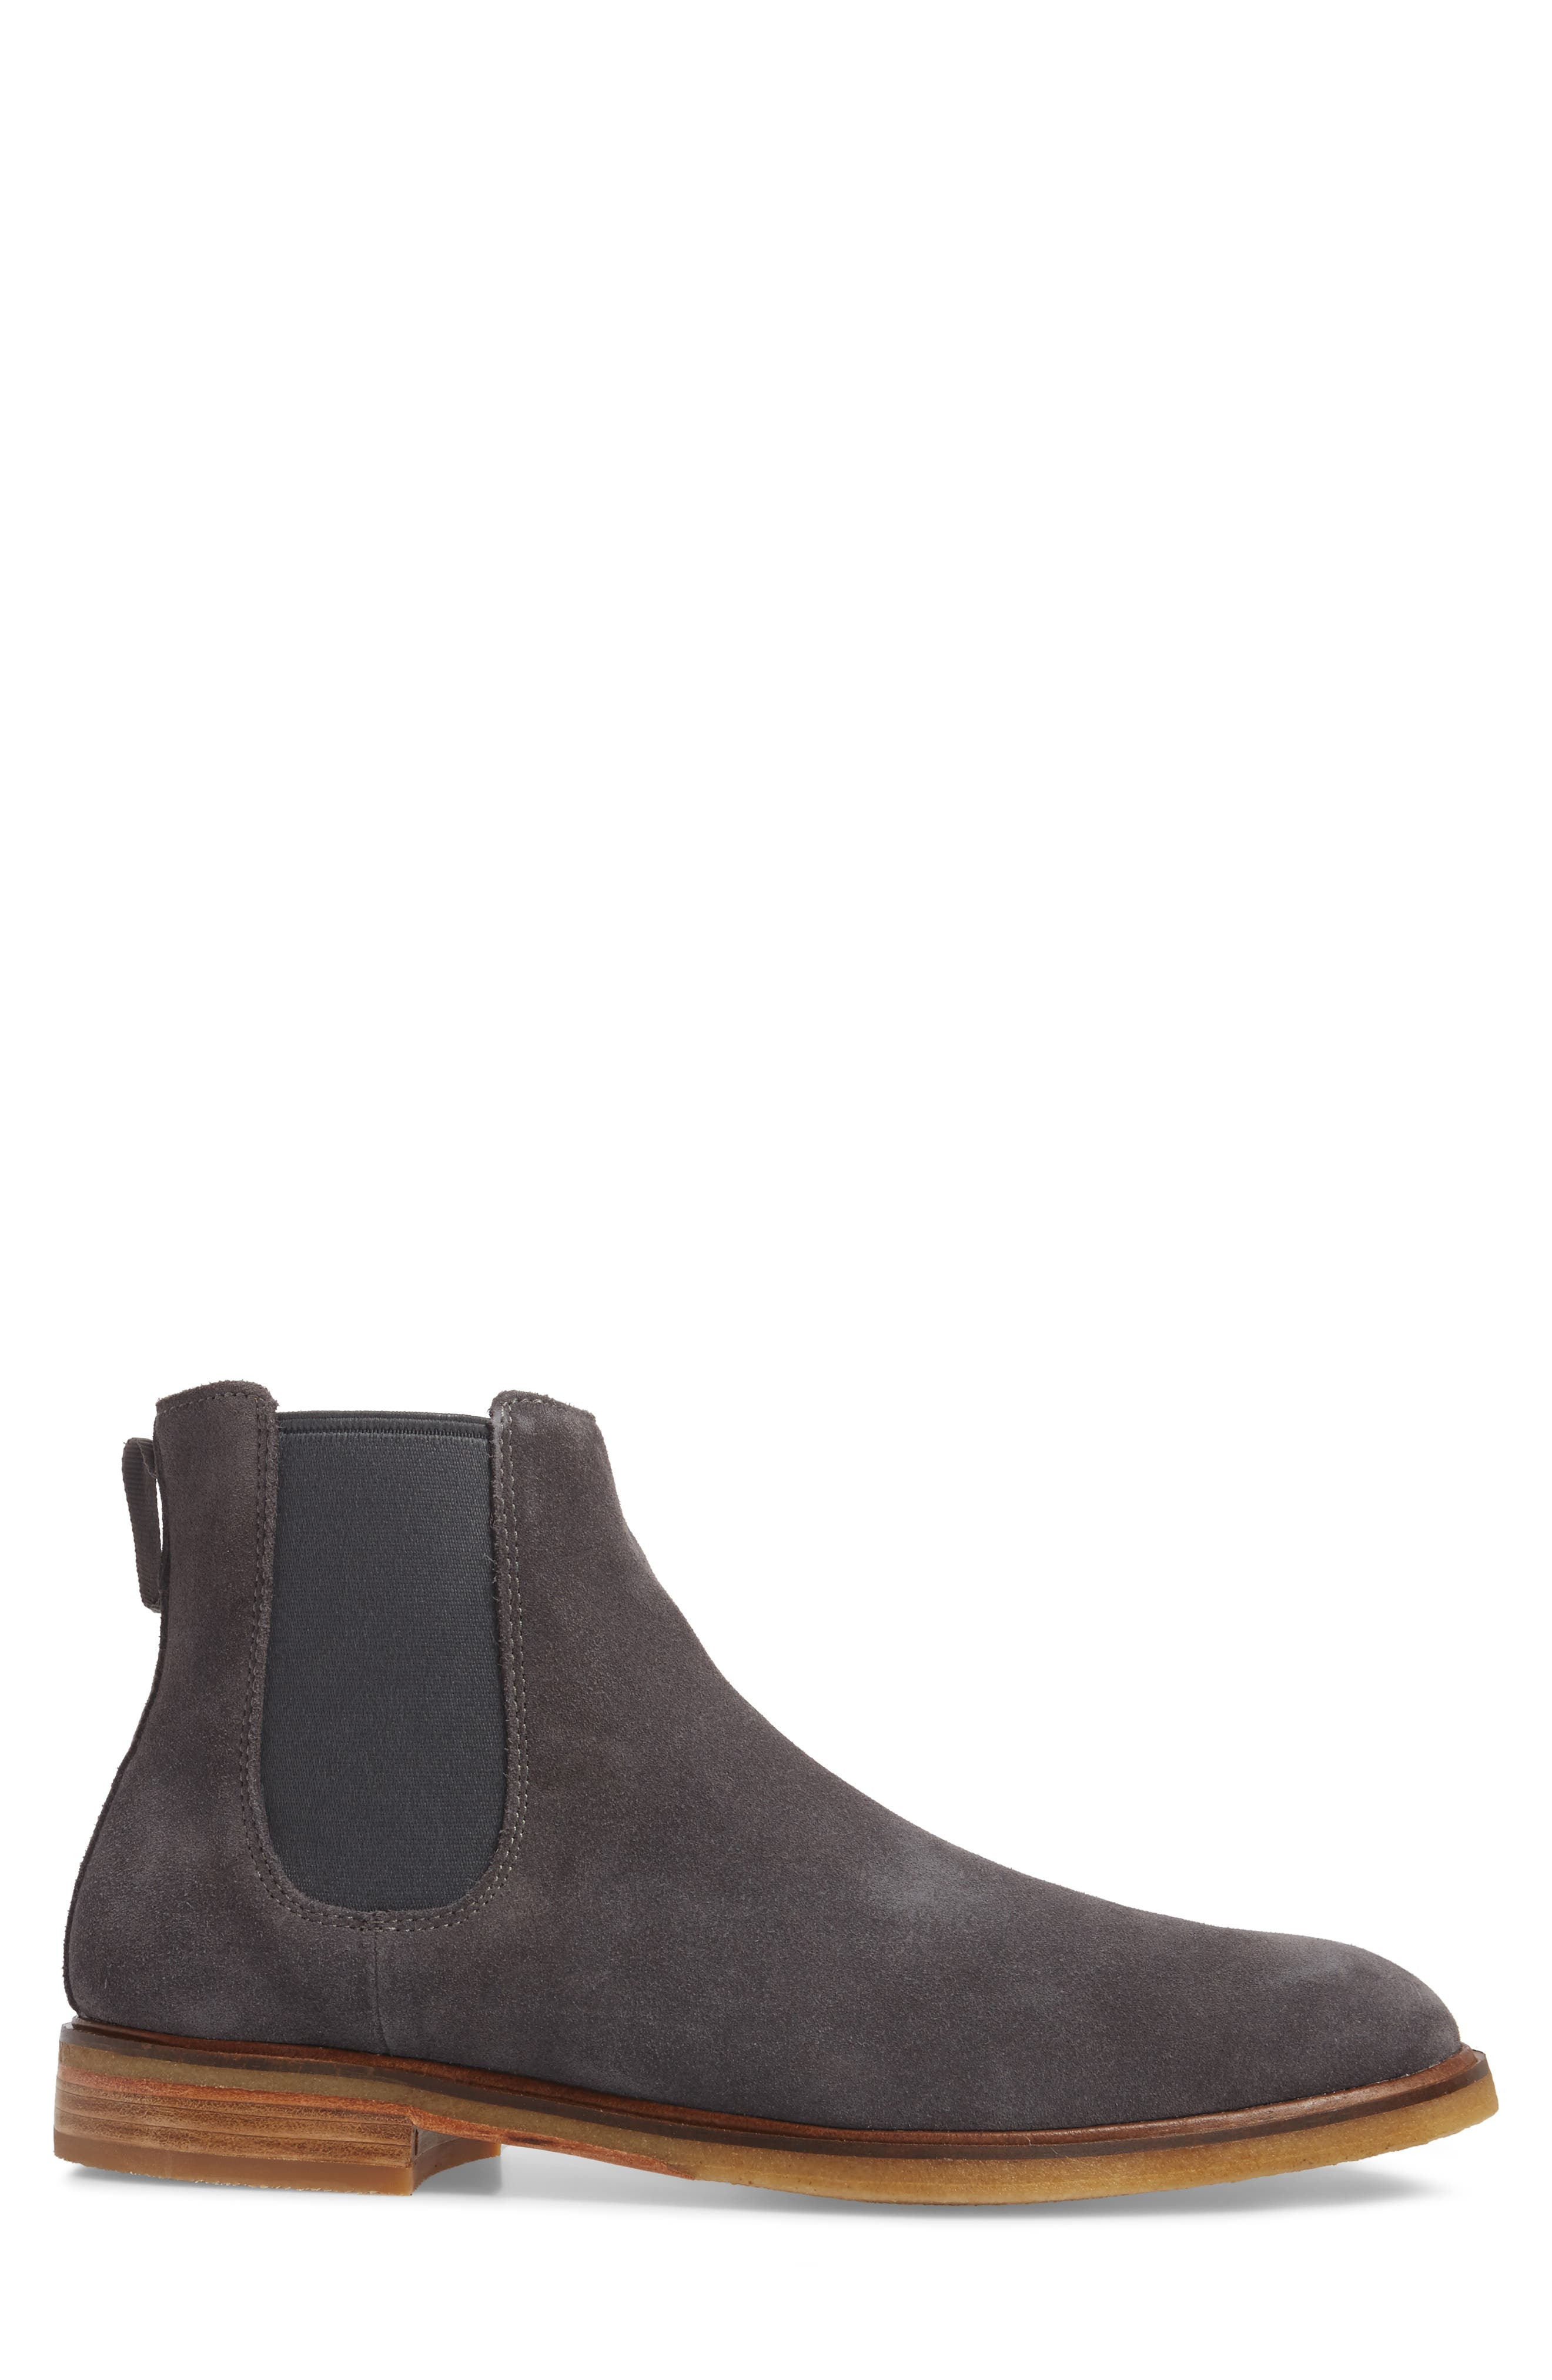 Clarkdale Chelsea Boot,                             Alternate thumbnail 3, color,                             Grey Suede